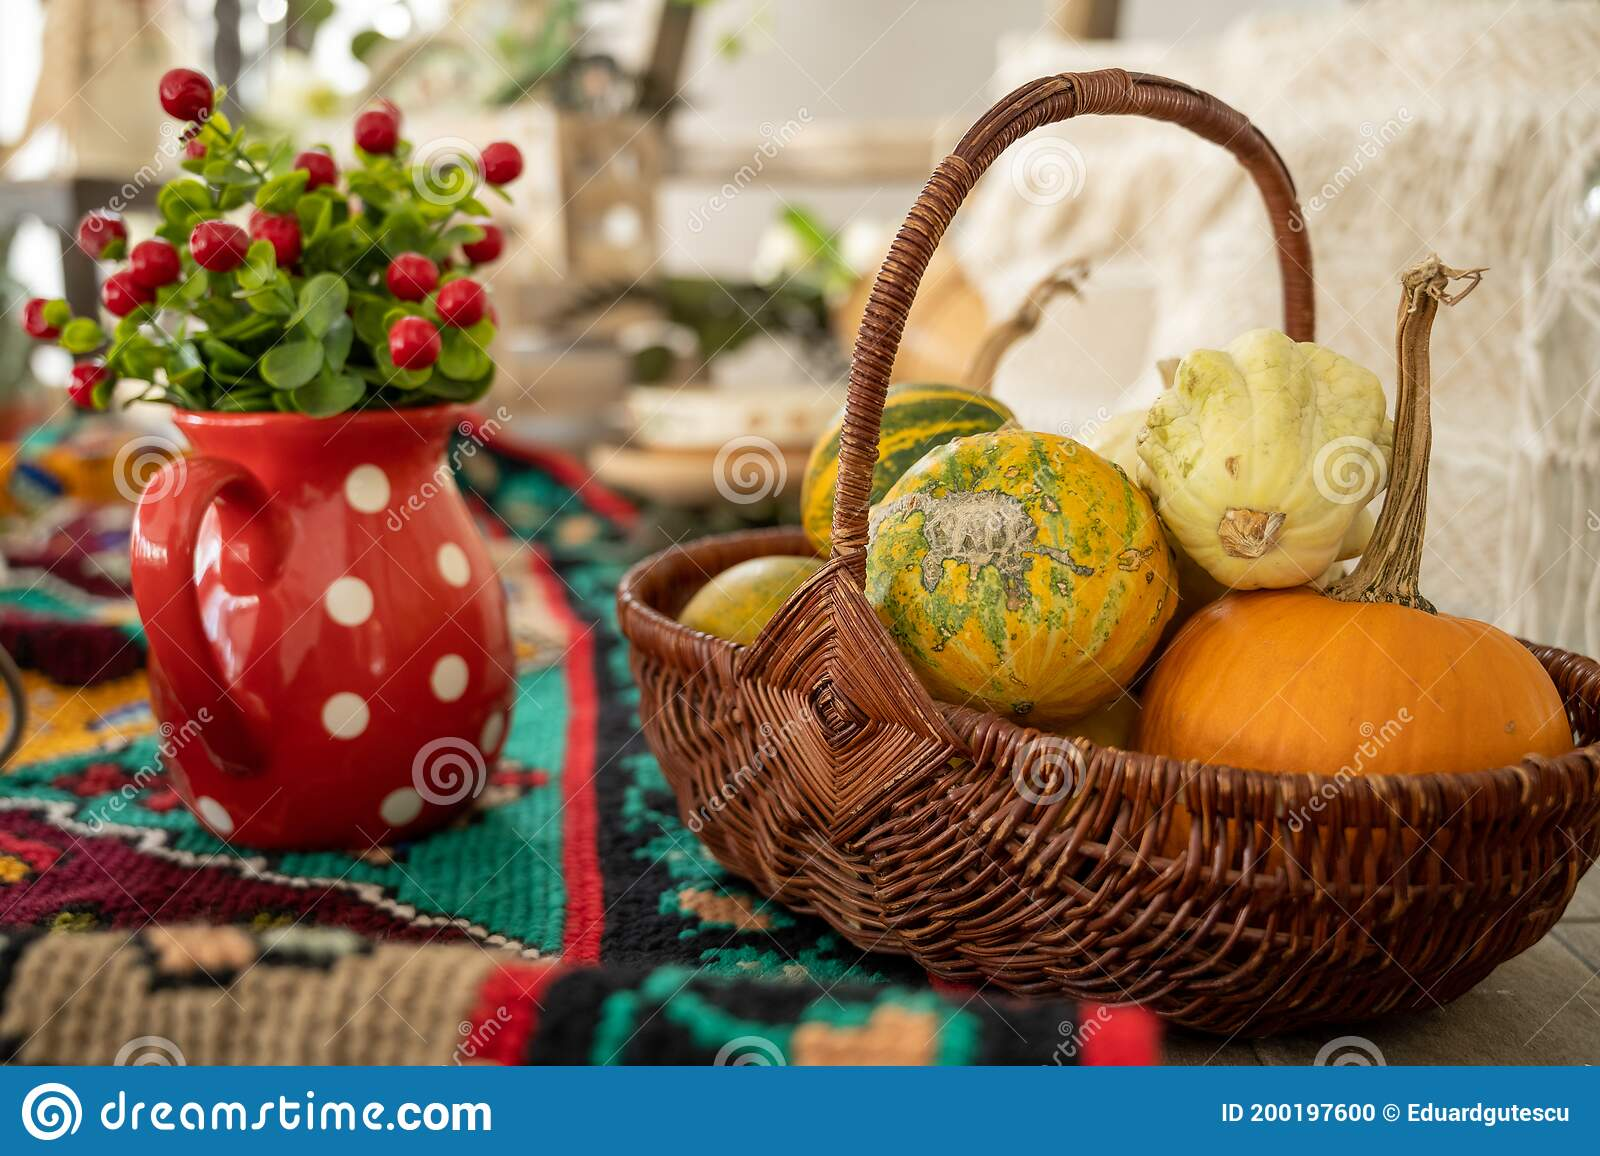 Romanian Traditional Home Decoration Handmade Art Craft Stock Photo Image Of Pattern Background 200197600